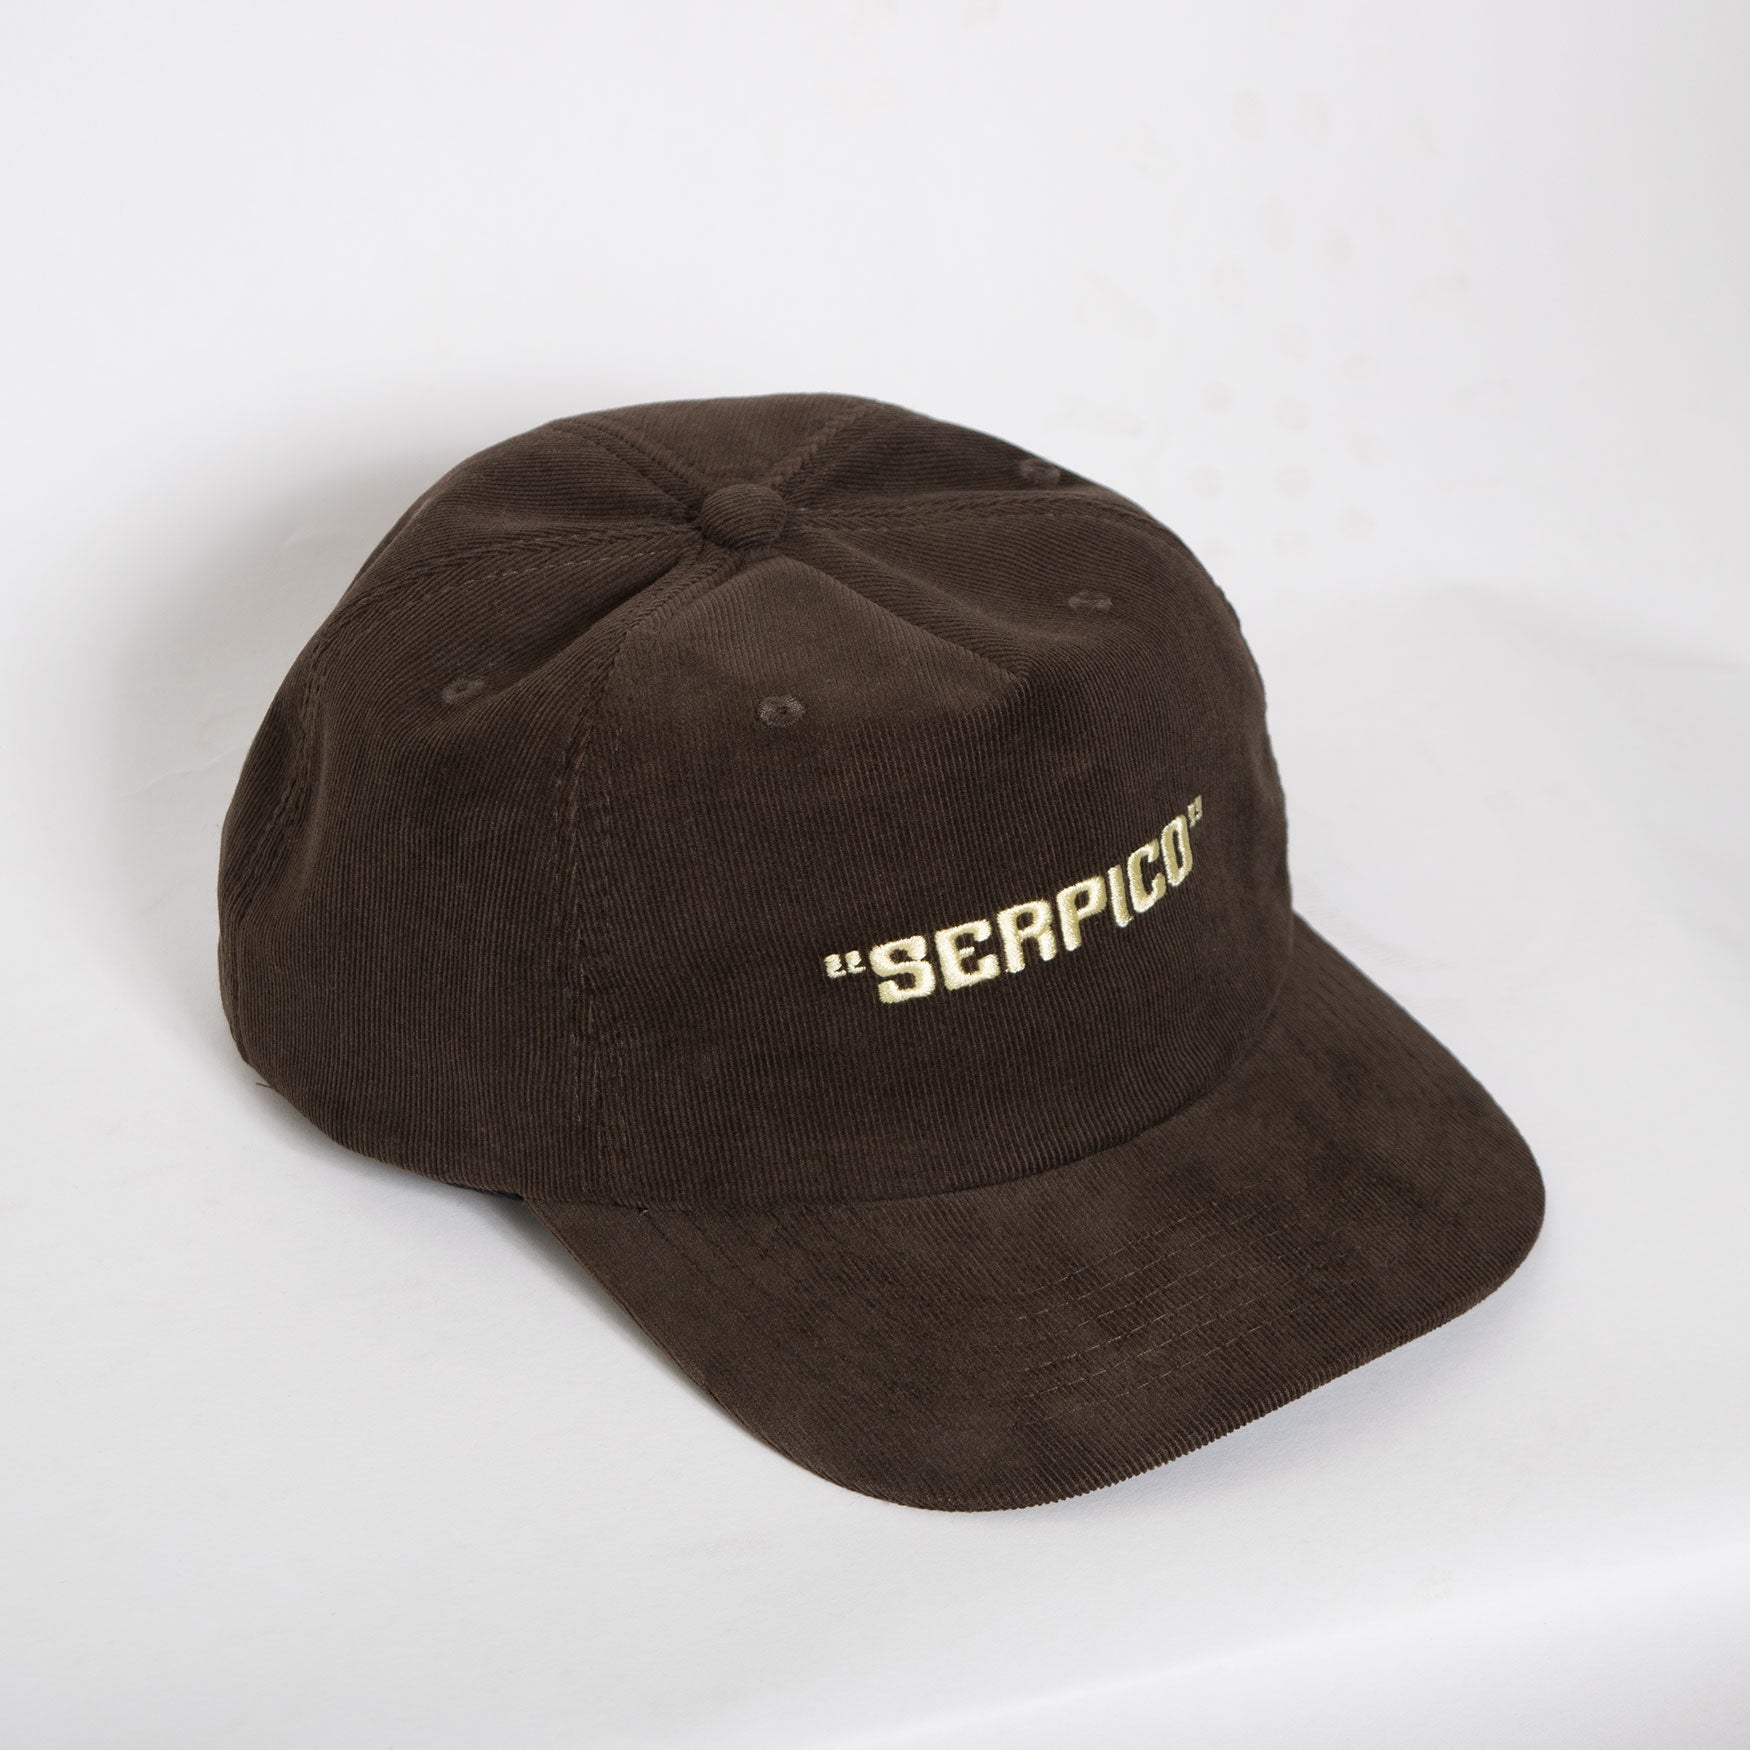 Come Sundown Serpico Corduroy Cap - Brown Hat - CARTOCON